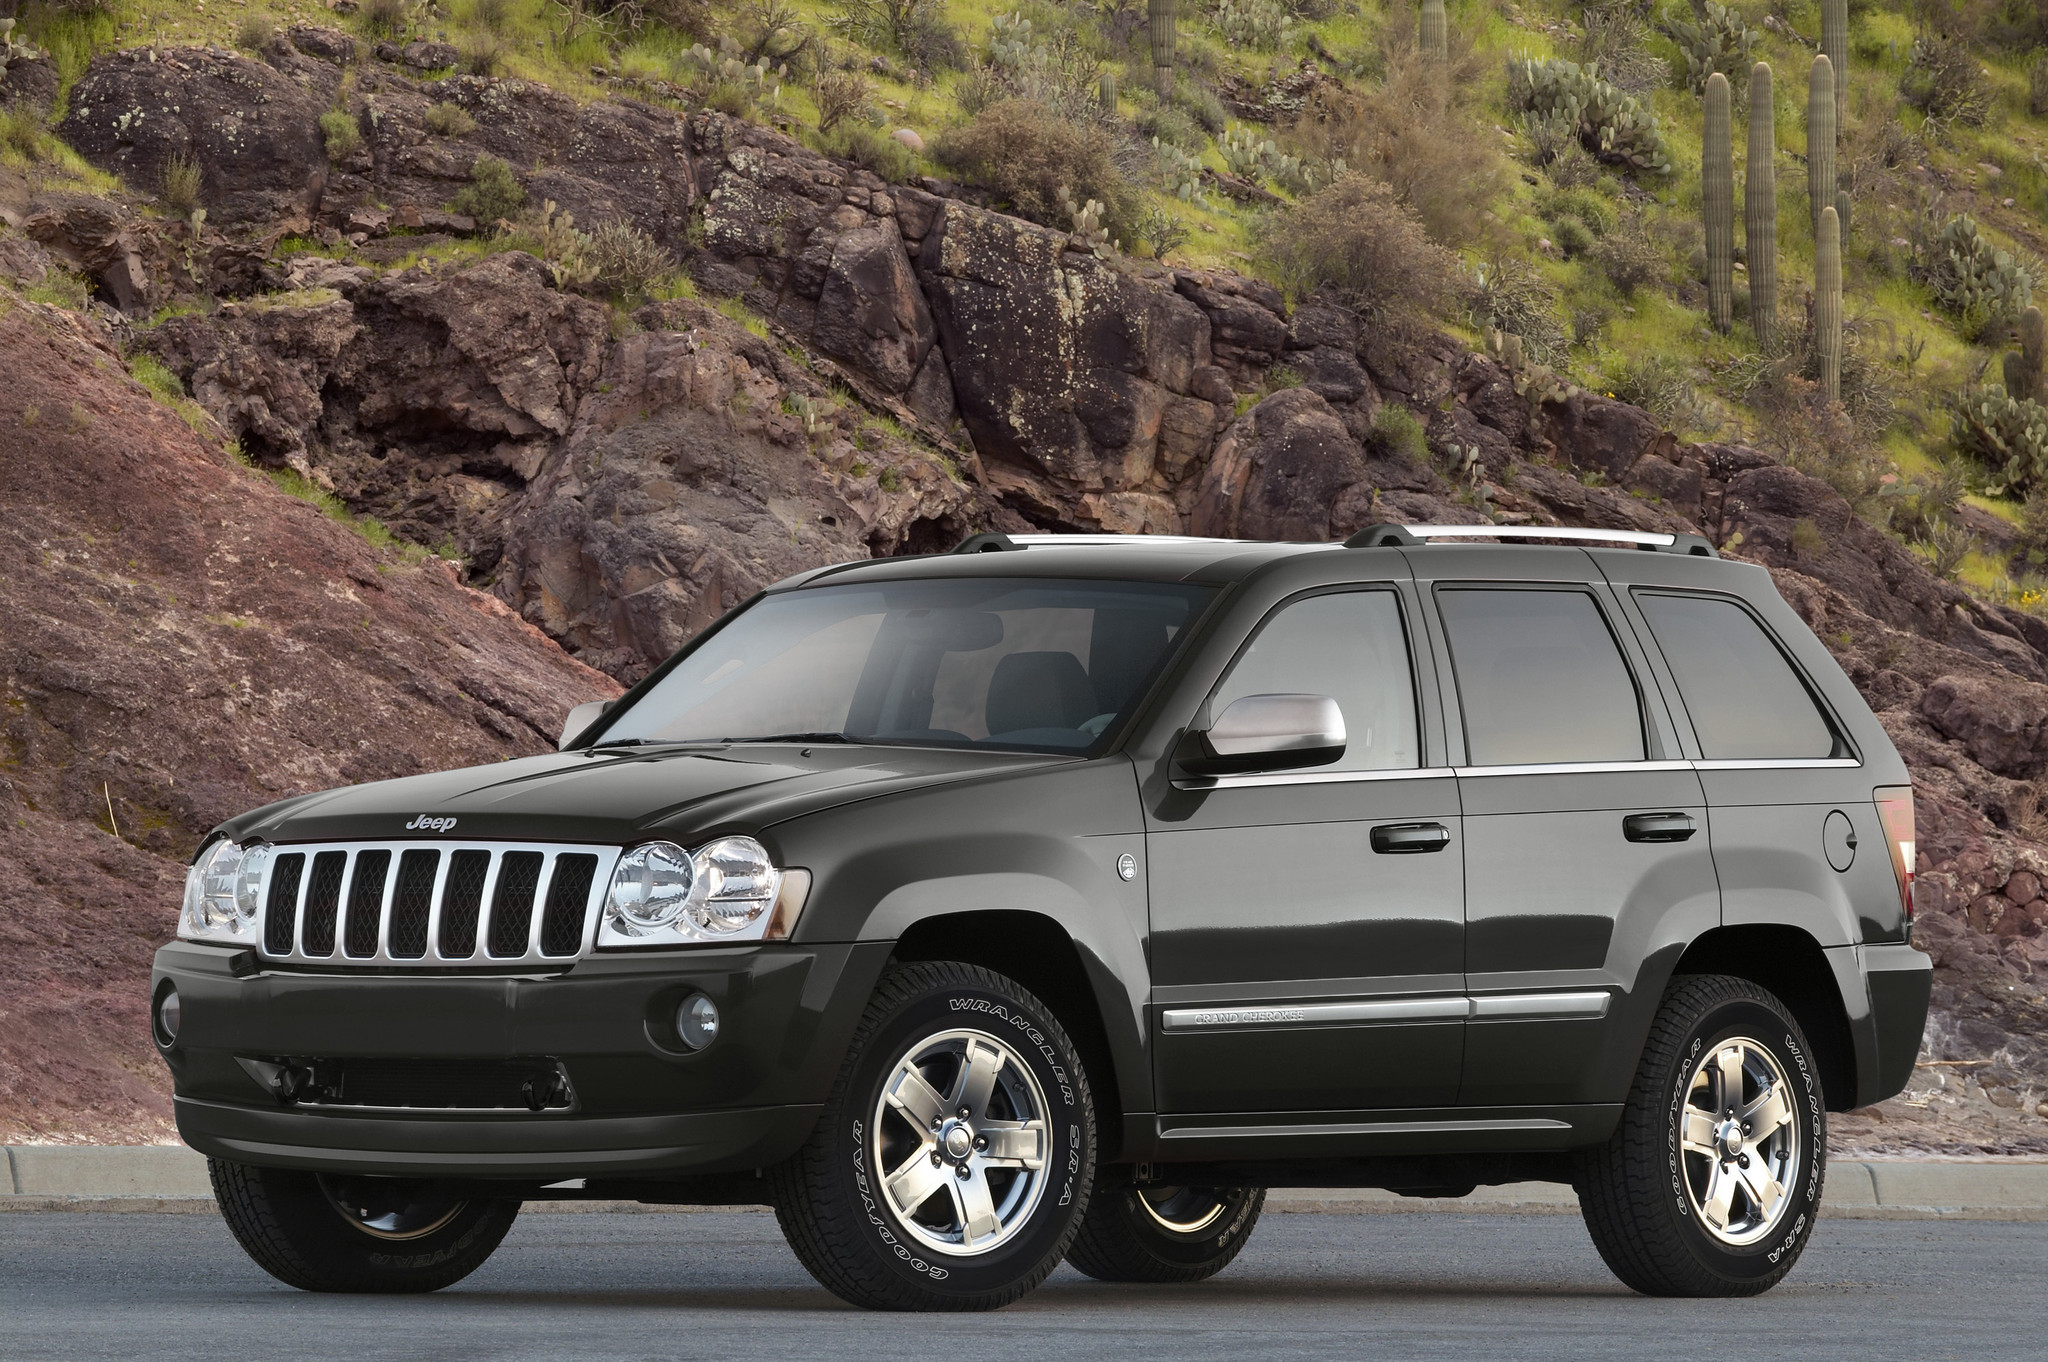 chrysler announces recall of up to 800 000 jeep suvs la times. Black Bedroom Furniture Sets. Home Design Ideas